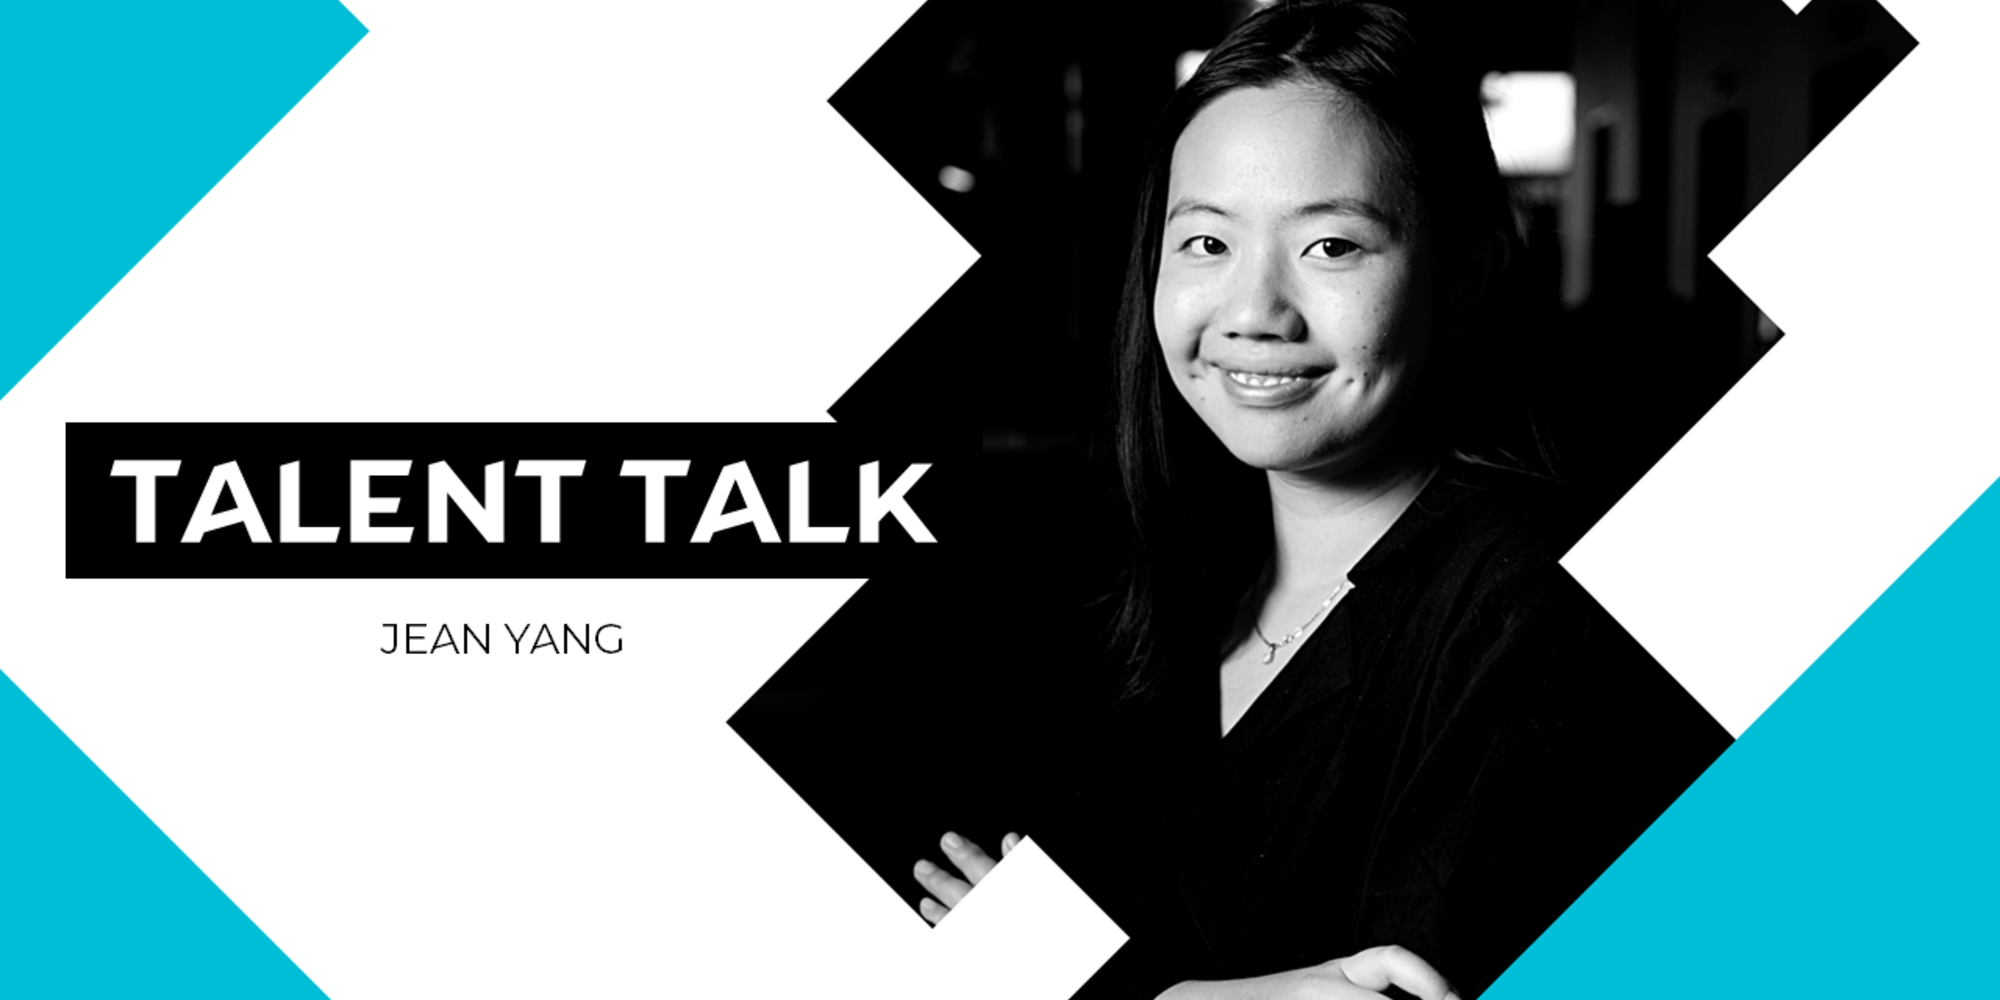 Jean Yang, Co-founder and VP of Onit's AI Center of Excellence, Talent Talk